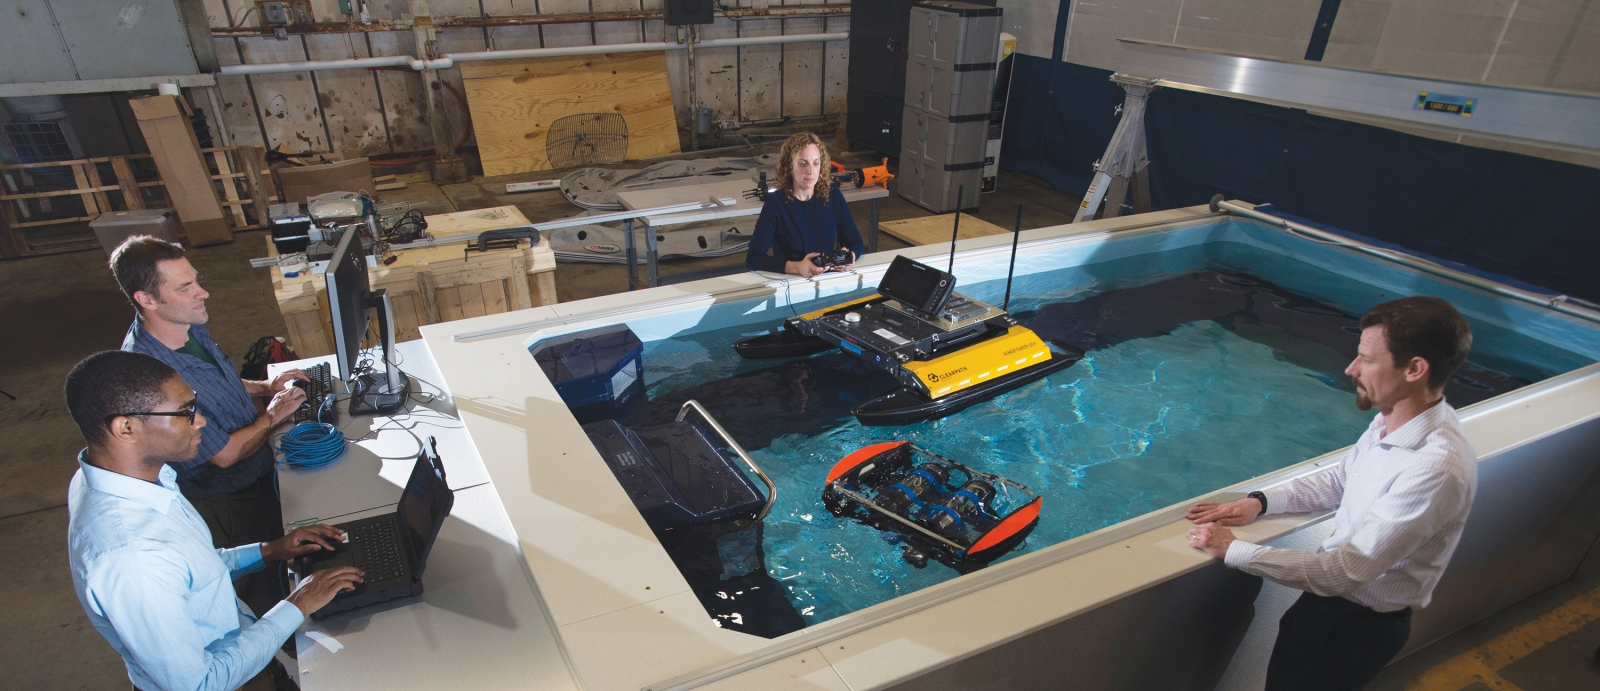 Staff use the maritime autonomy test tank to demonstrate and test prototype technology for unmanned undersea vehicles.